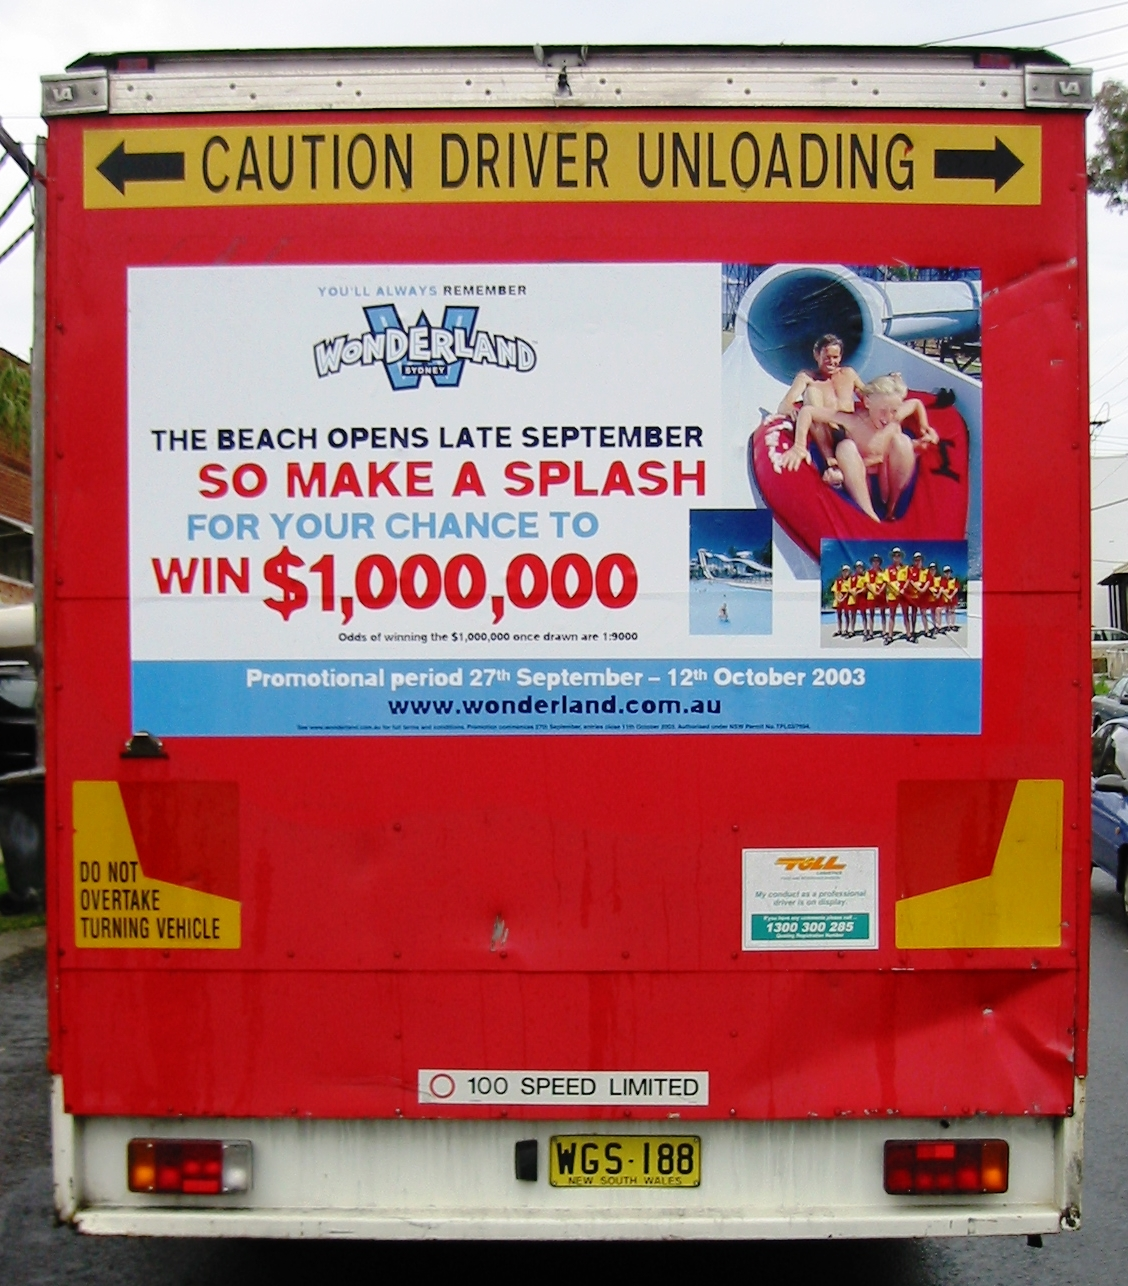 Fleet graphics. TruckBacks. Coca Cola. CCA. Wonderland promotion 2003. CocaCola South Pacific. Toll. Flatback.